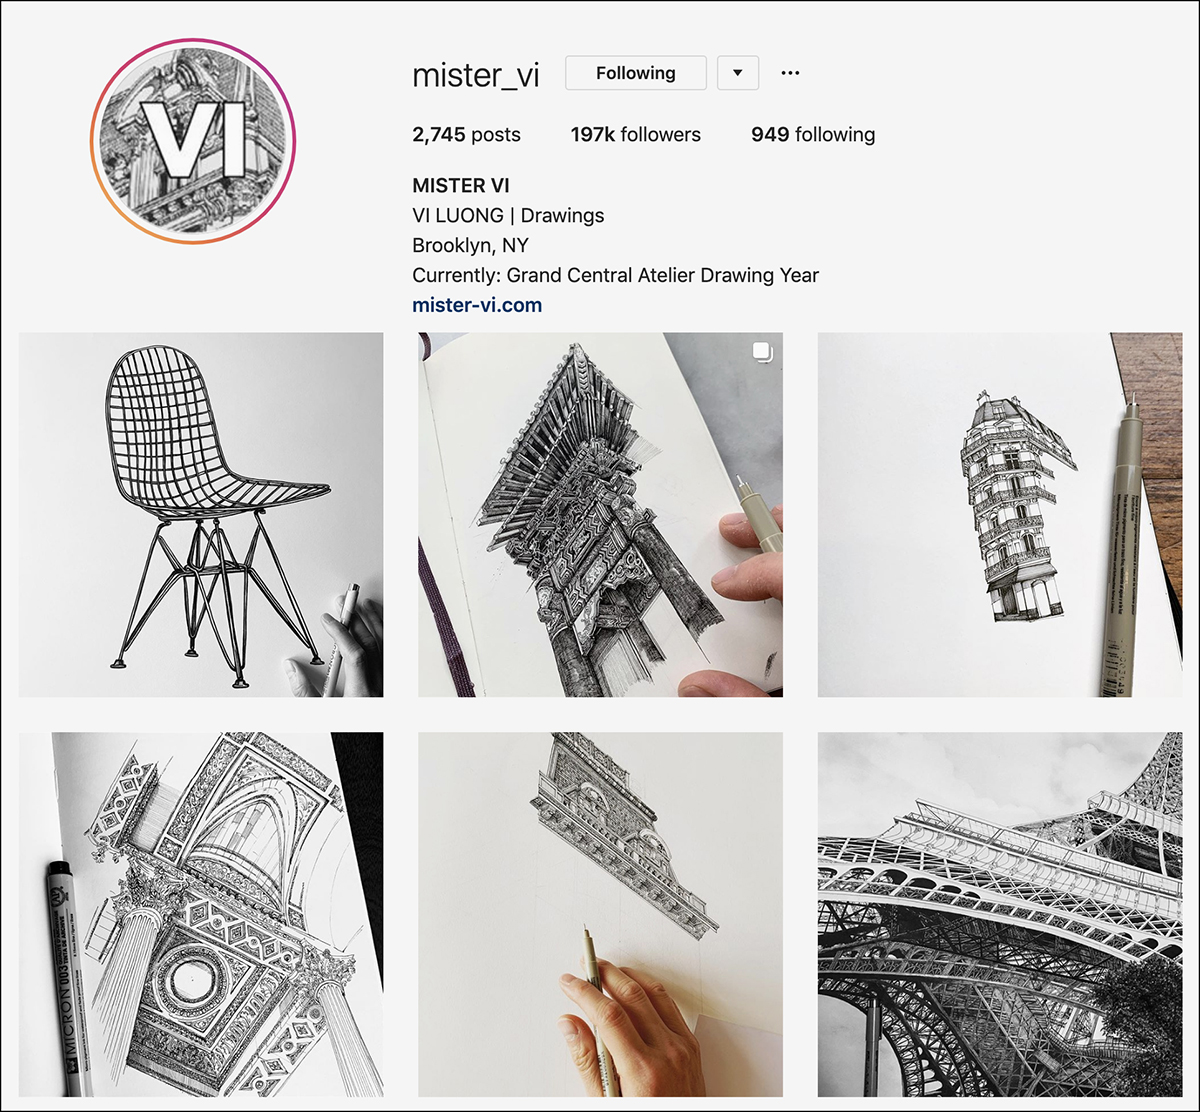 mister_vi Instagram account - good for sketching